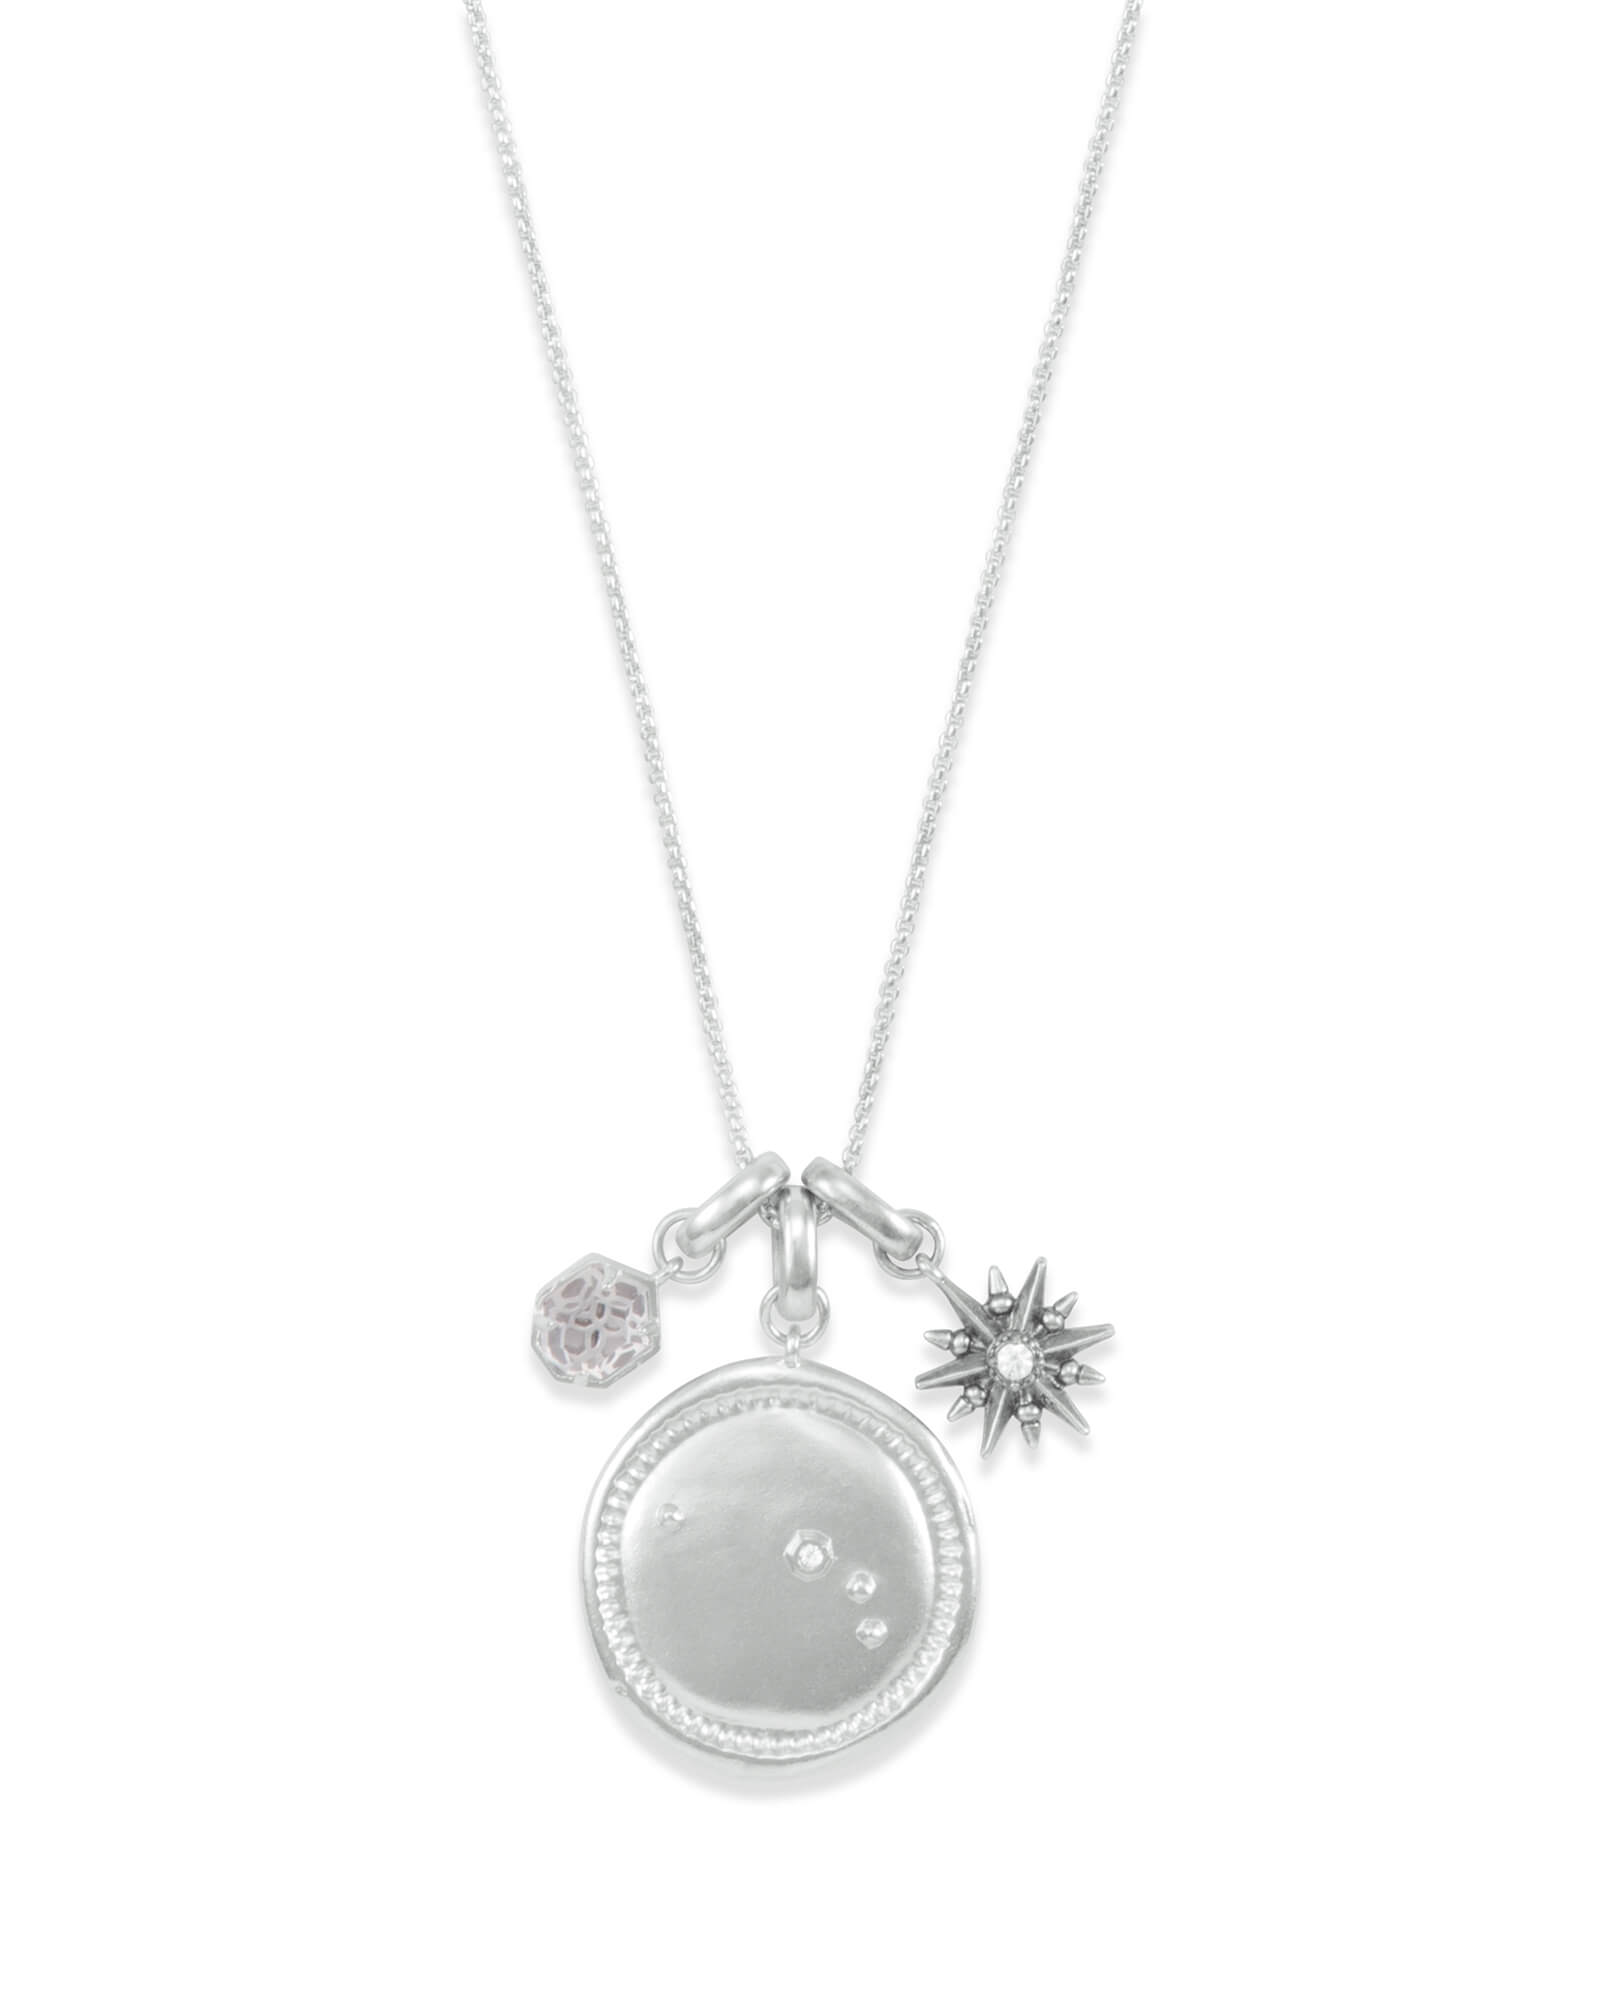 April Aries Charm Necklace Set in Silver